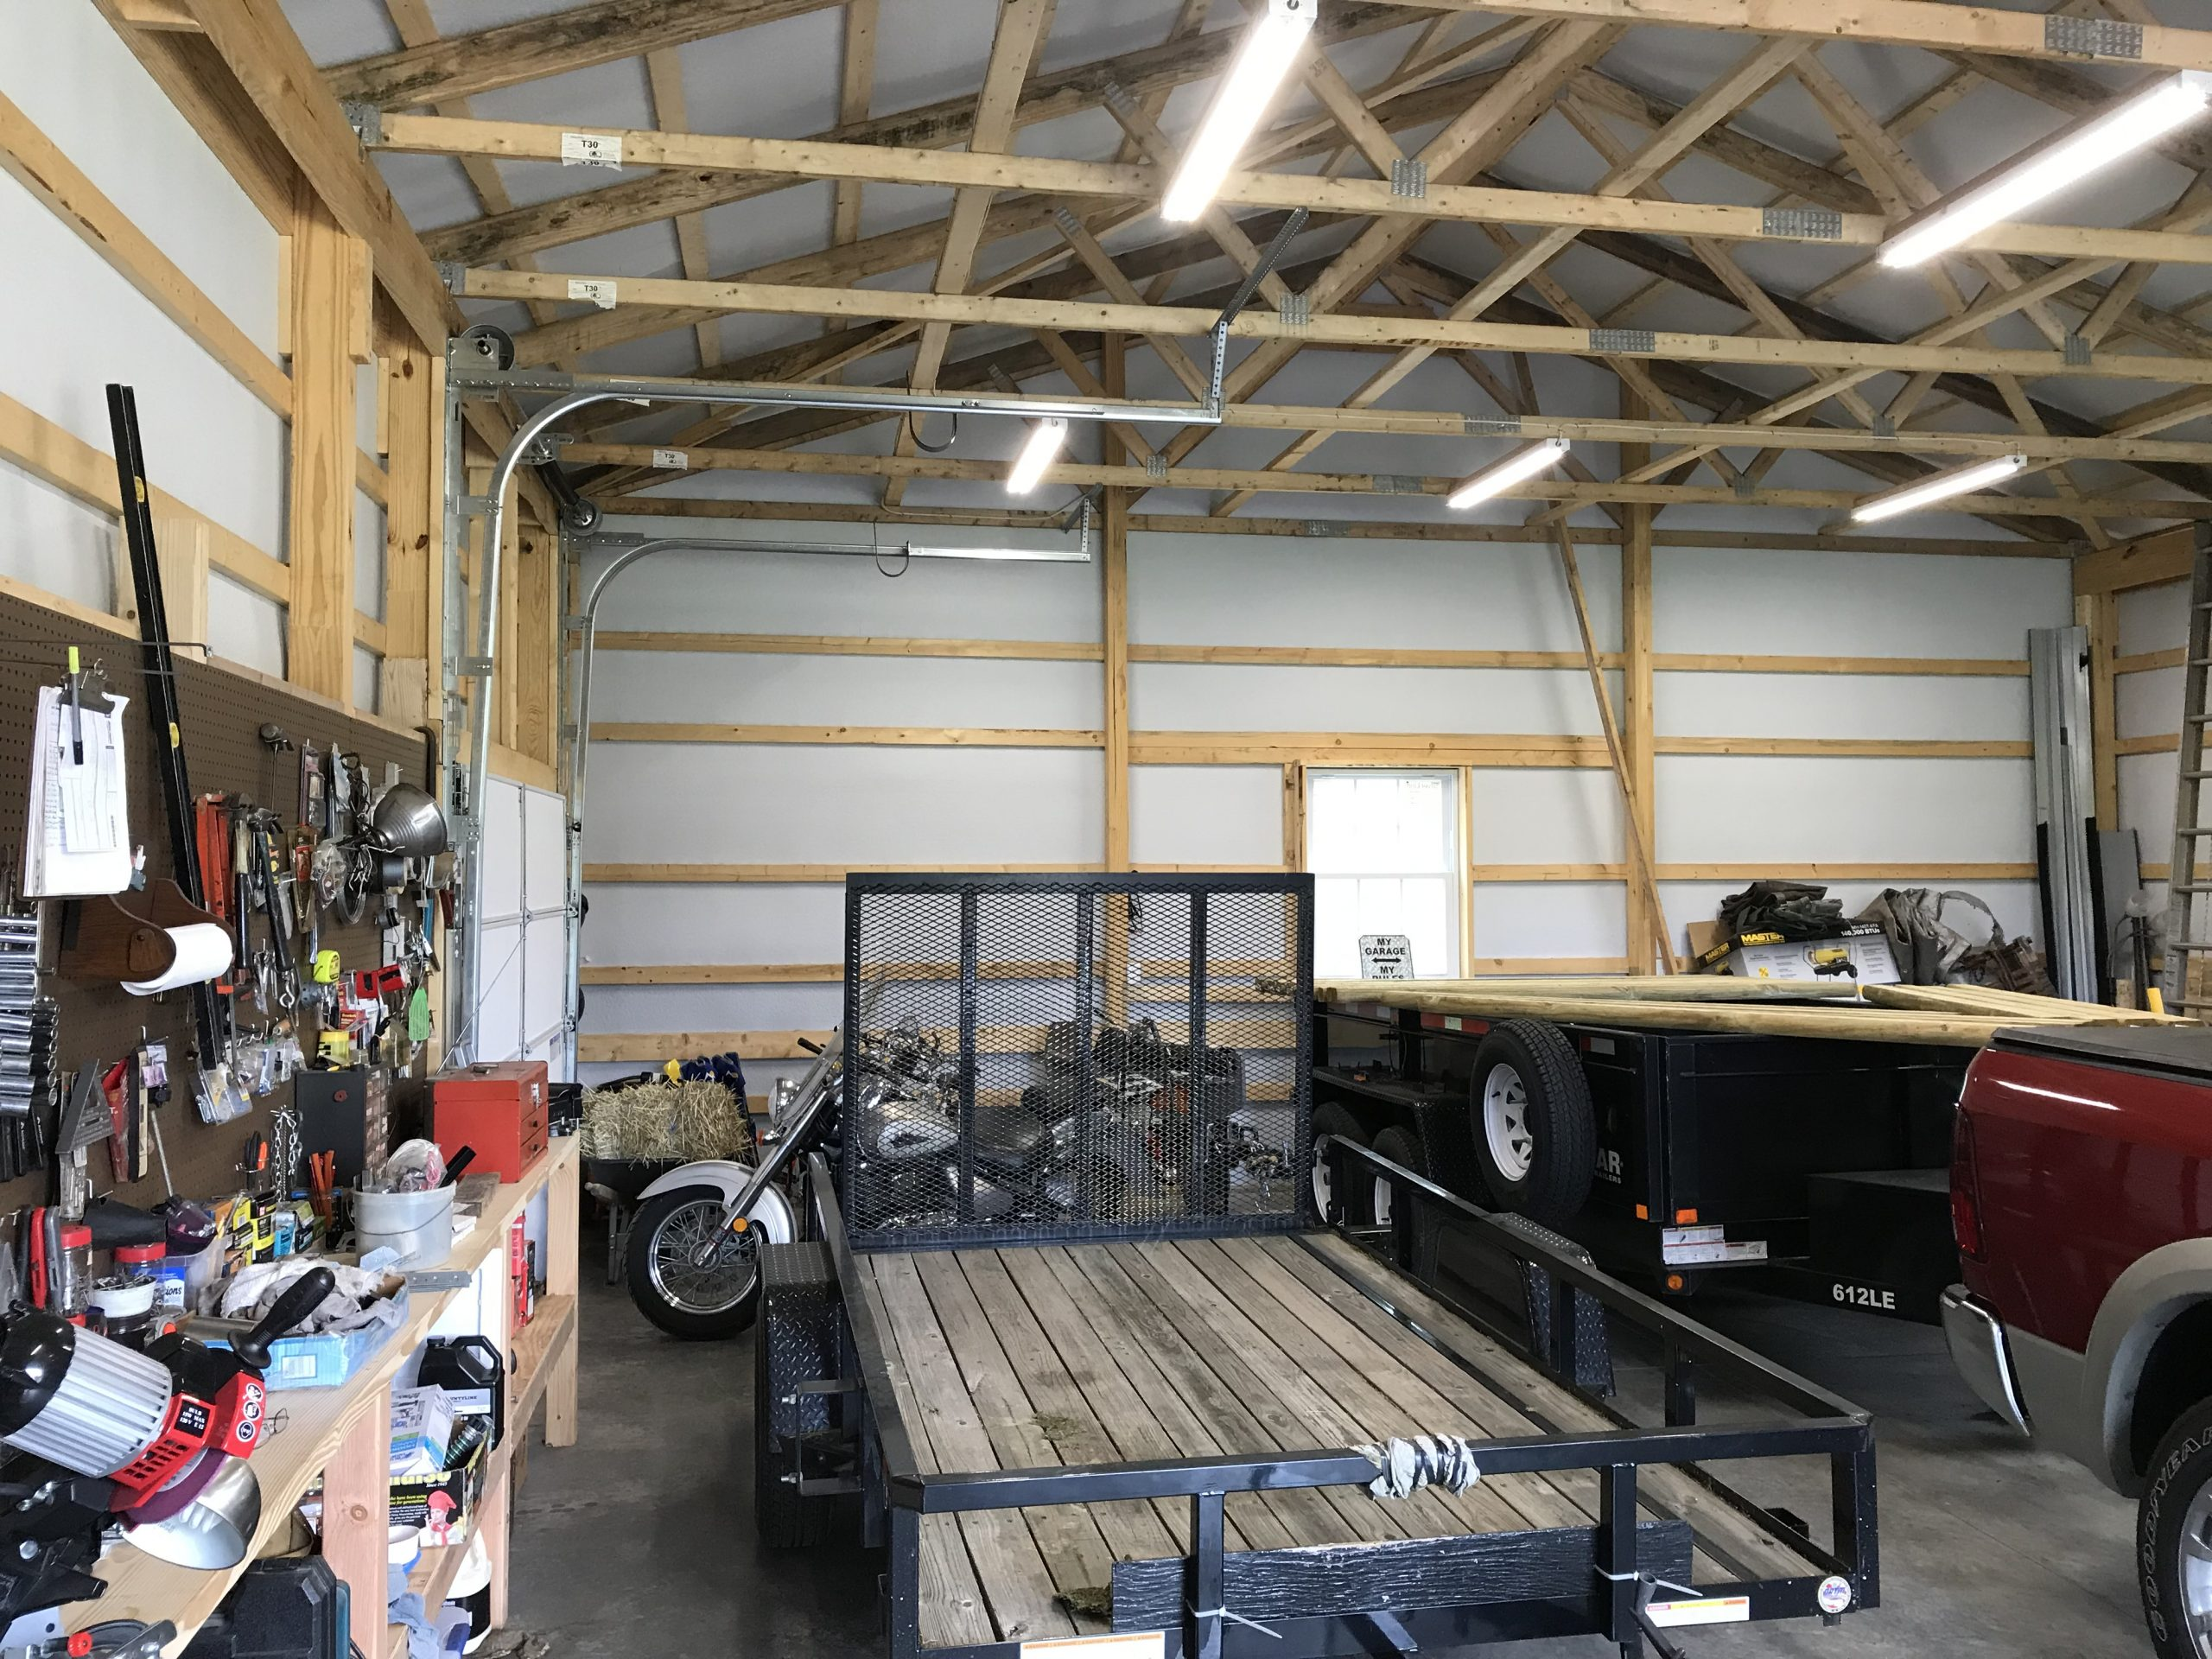 interior shot of a pole garage with car and tools